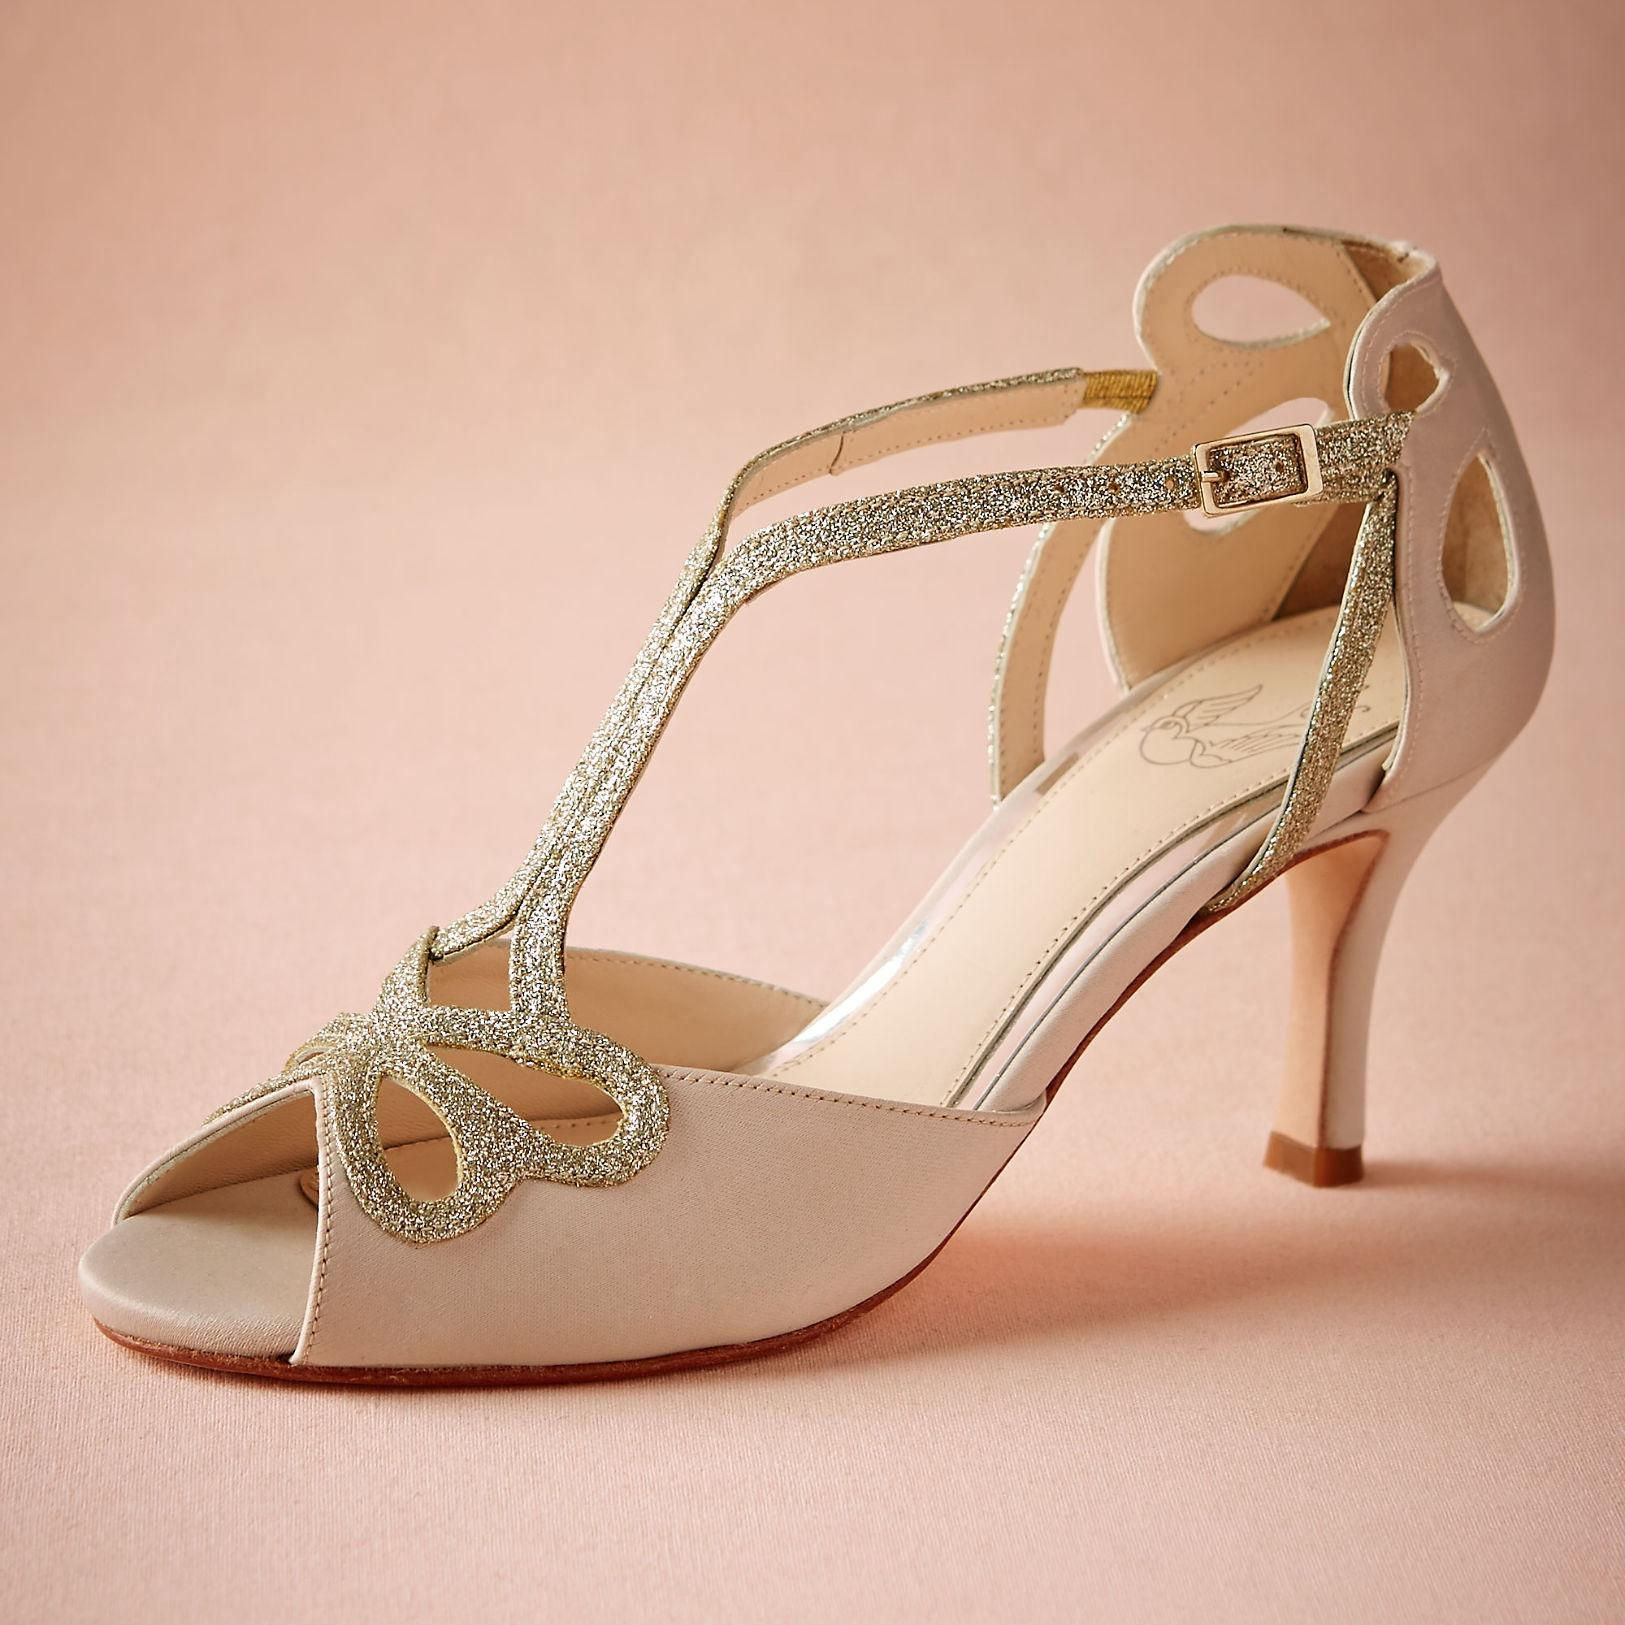 Blush Low Heel Wedding Shoes Hollow Out Peep Toe Bridal